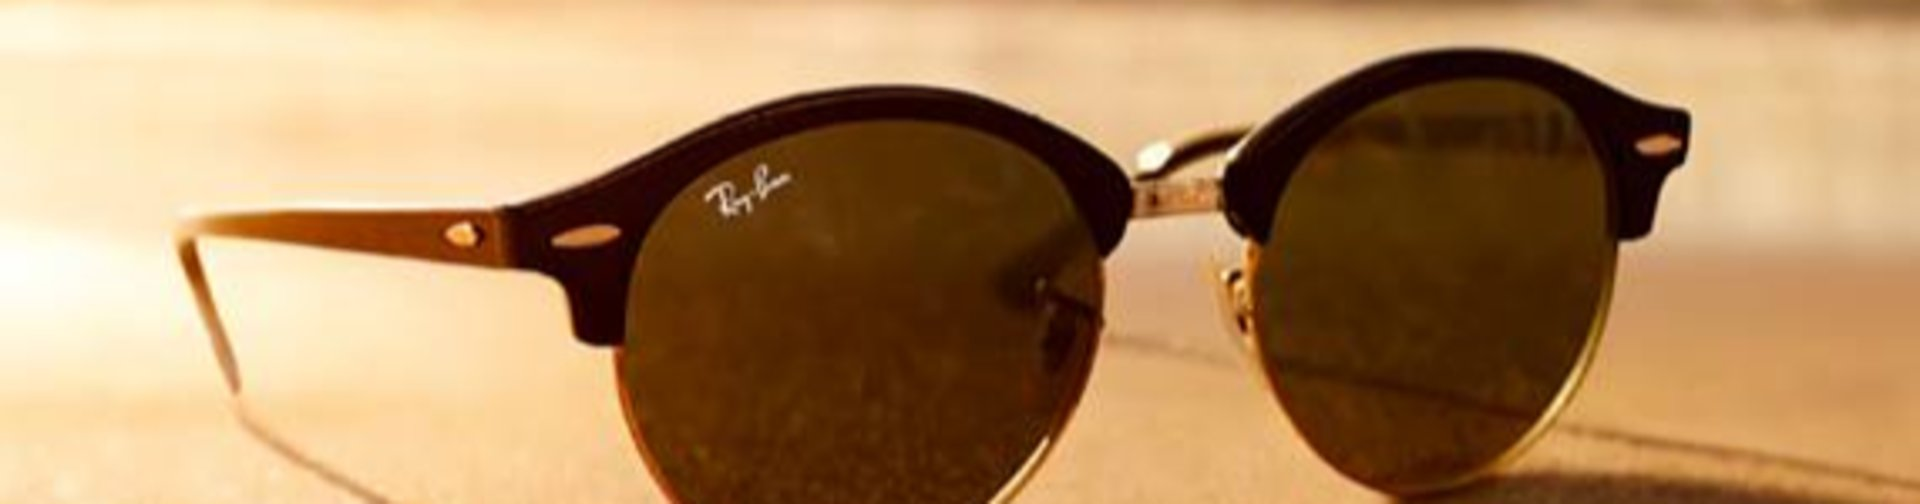 611023d116a Your Source For Ray-Ban Glasses In Burlington